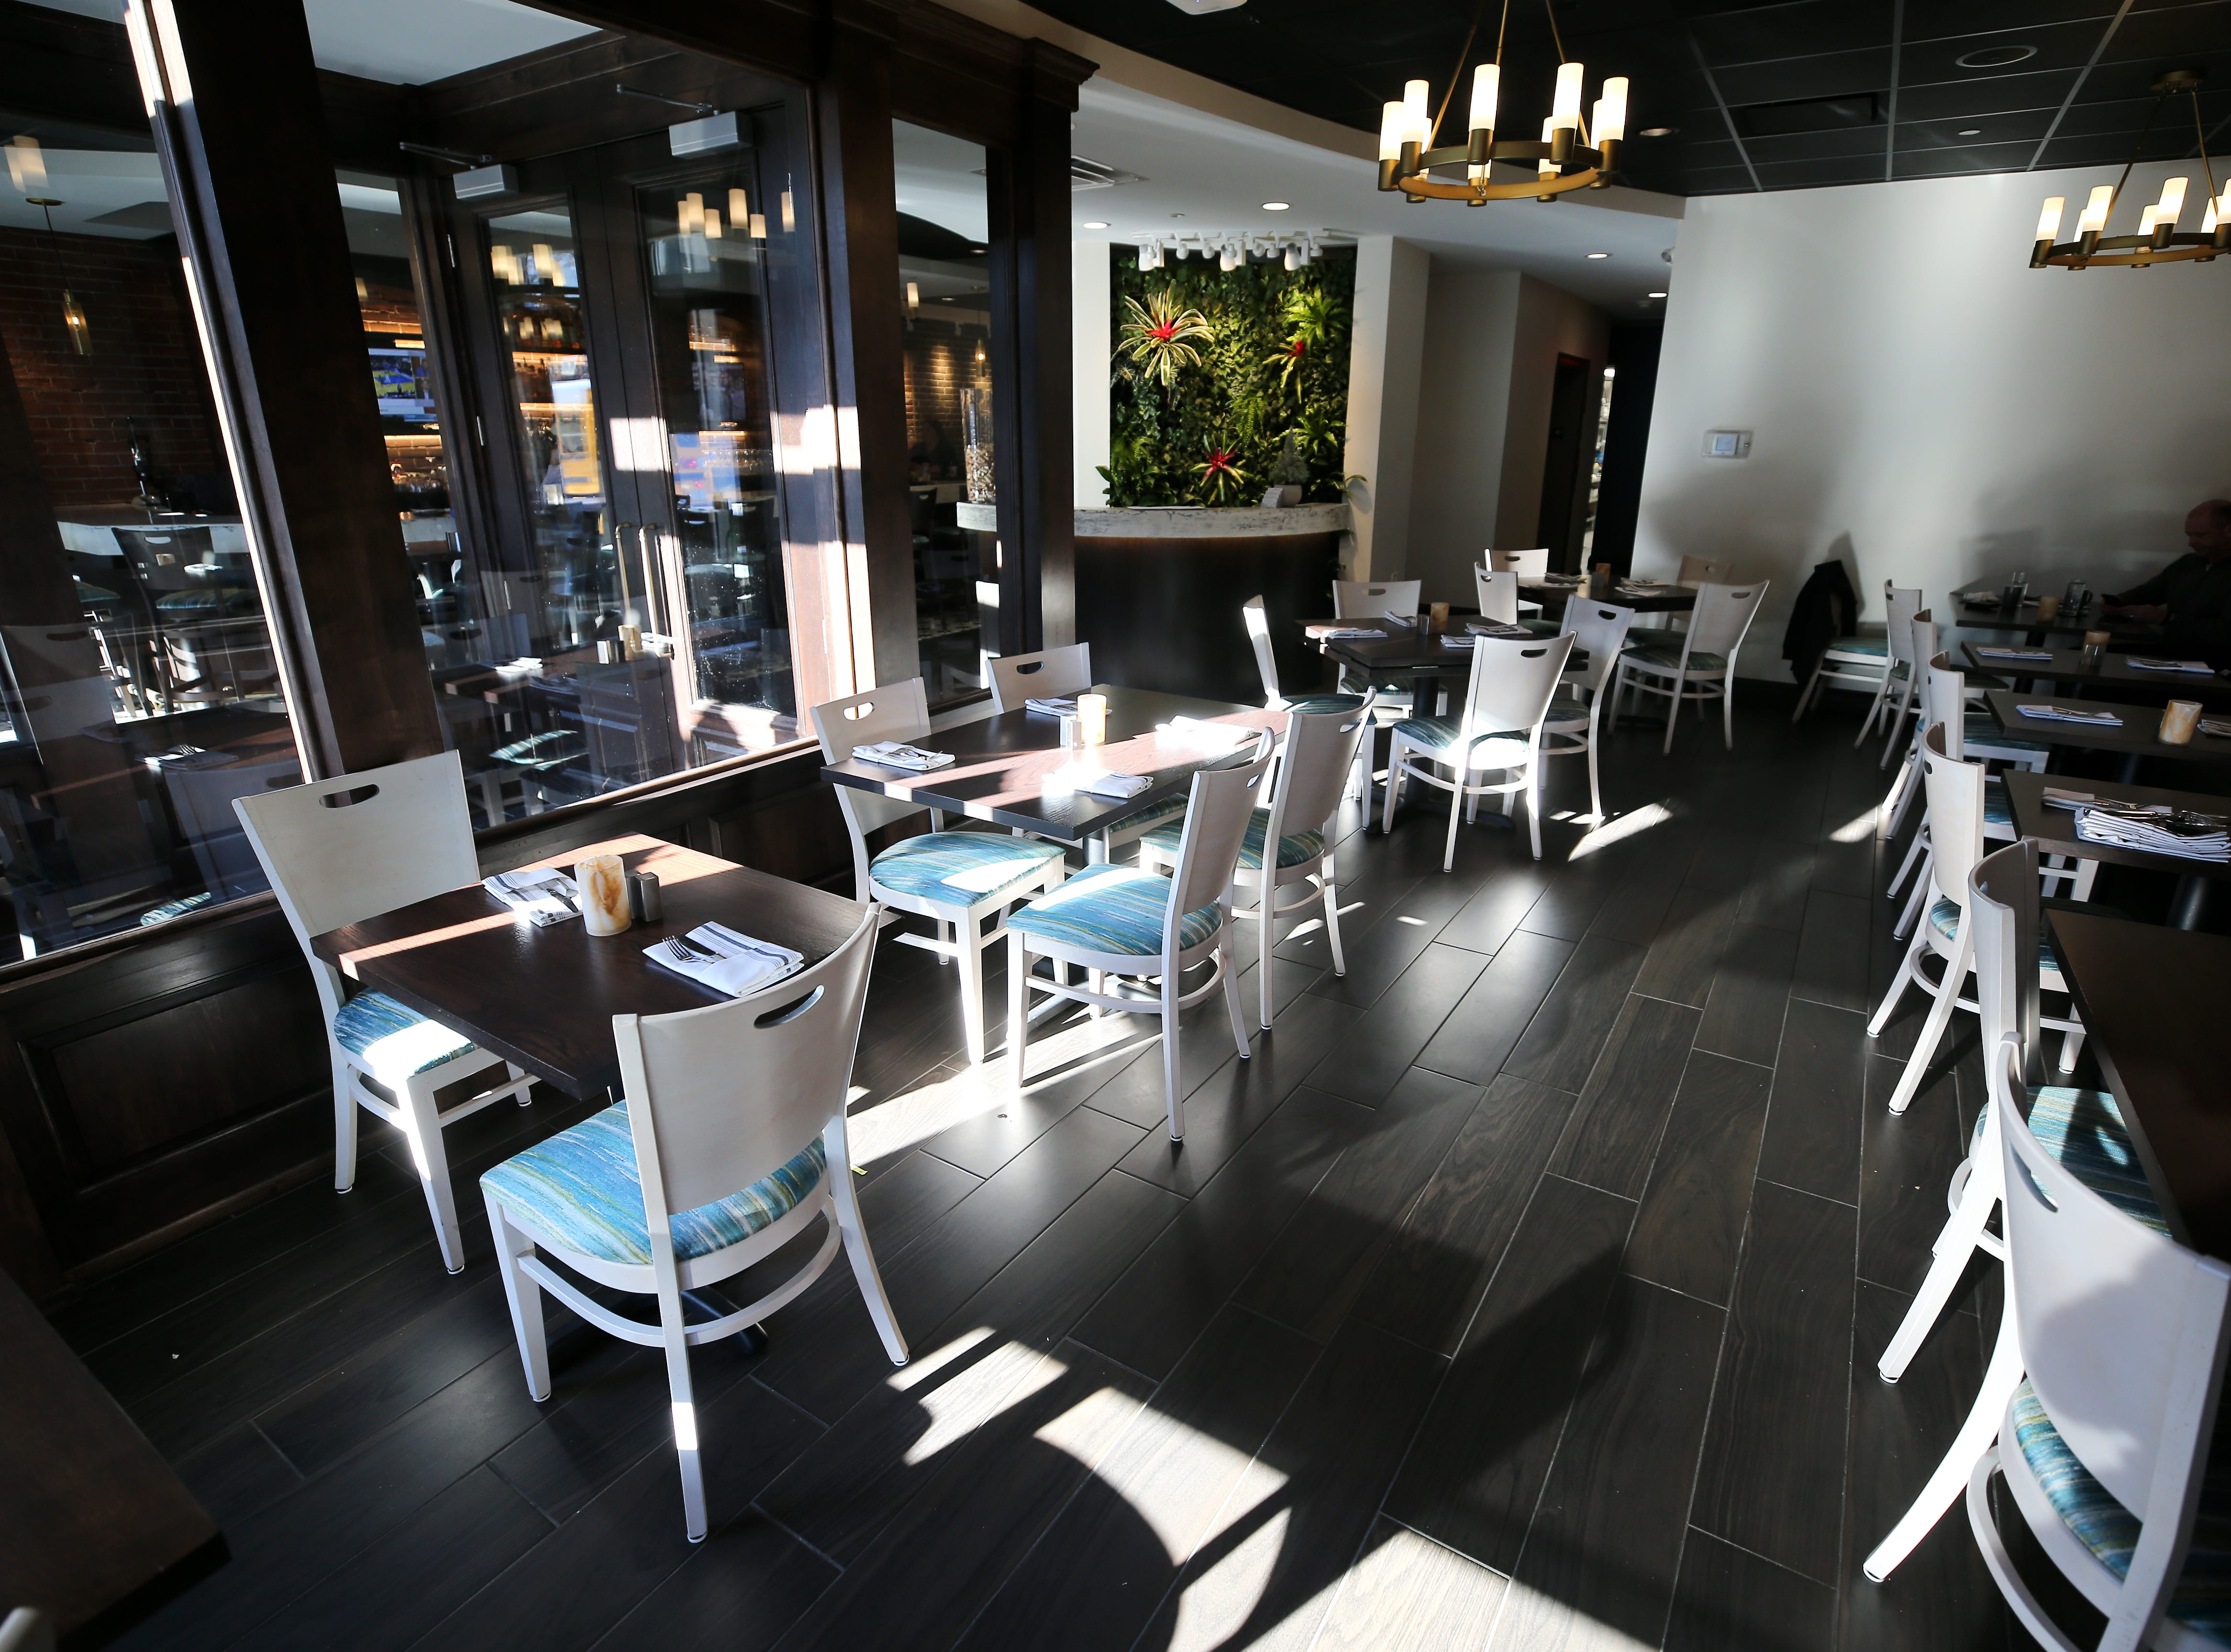 View of the downstairs dining room, pictured, Friday, Jan. 25, 2019, at Tano Bistro restaurant in Loveland, Ohio.